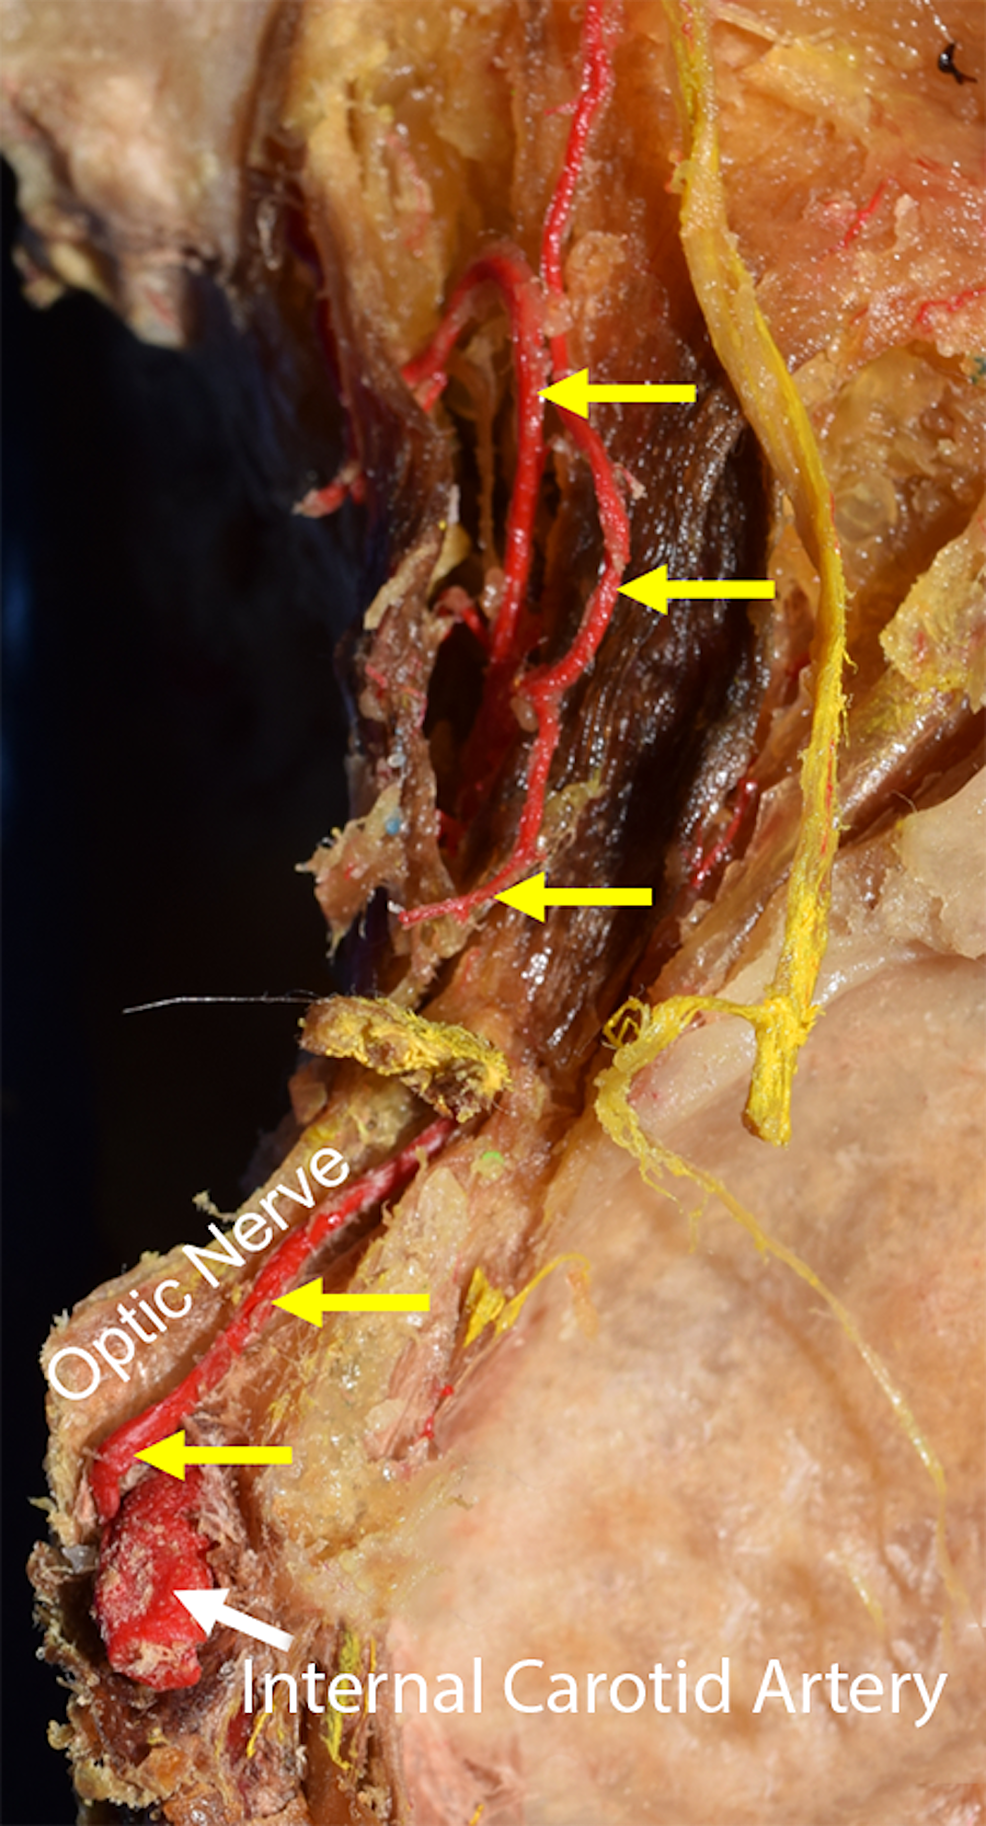 Course-of-the-right-optic-artery-arising-from-the-internal-carotid-artery-in-normal-anatomy-(yellow-arrows)